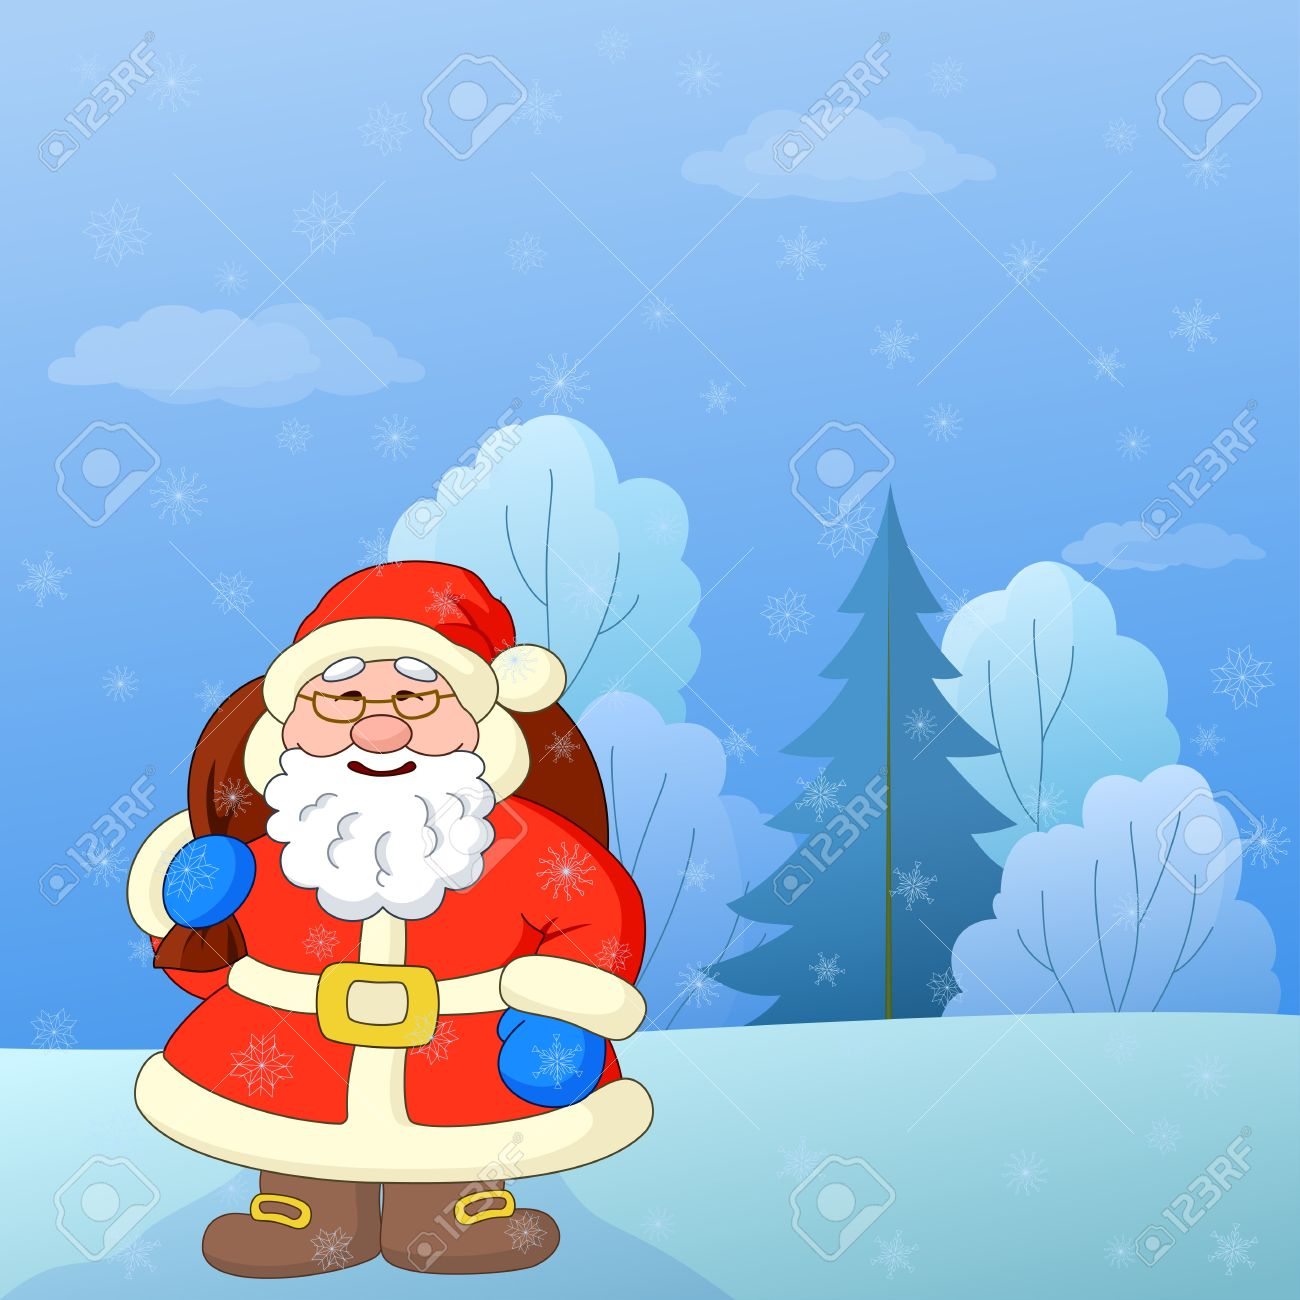 Christmas cartoon: Santa Claus with a bag of gifts on a snowy winter forest glade Stock Vector - 10457786